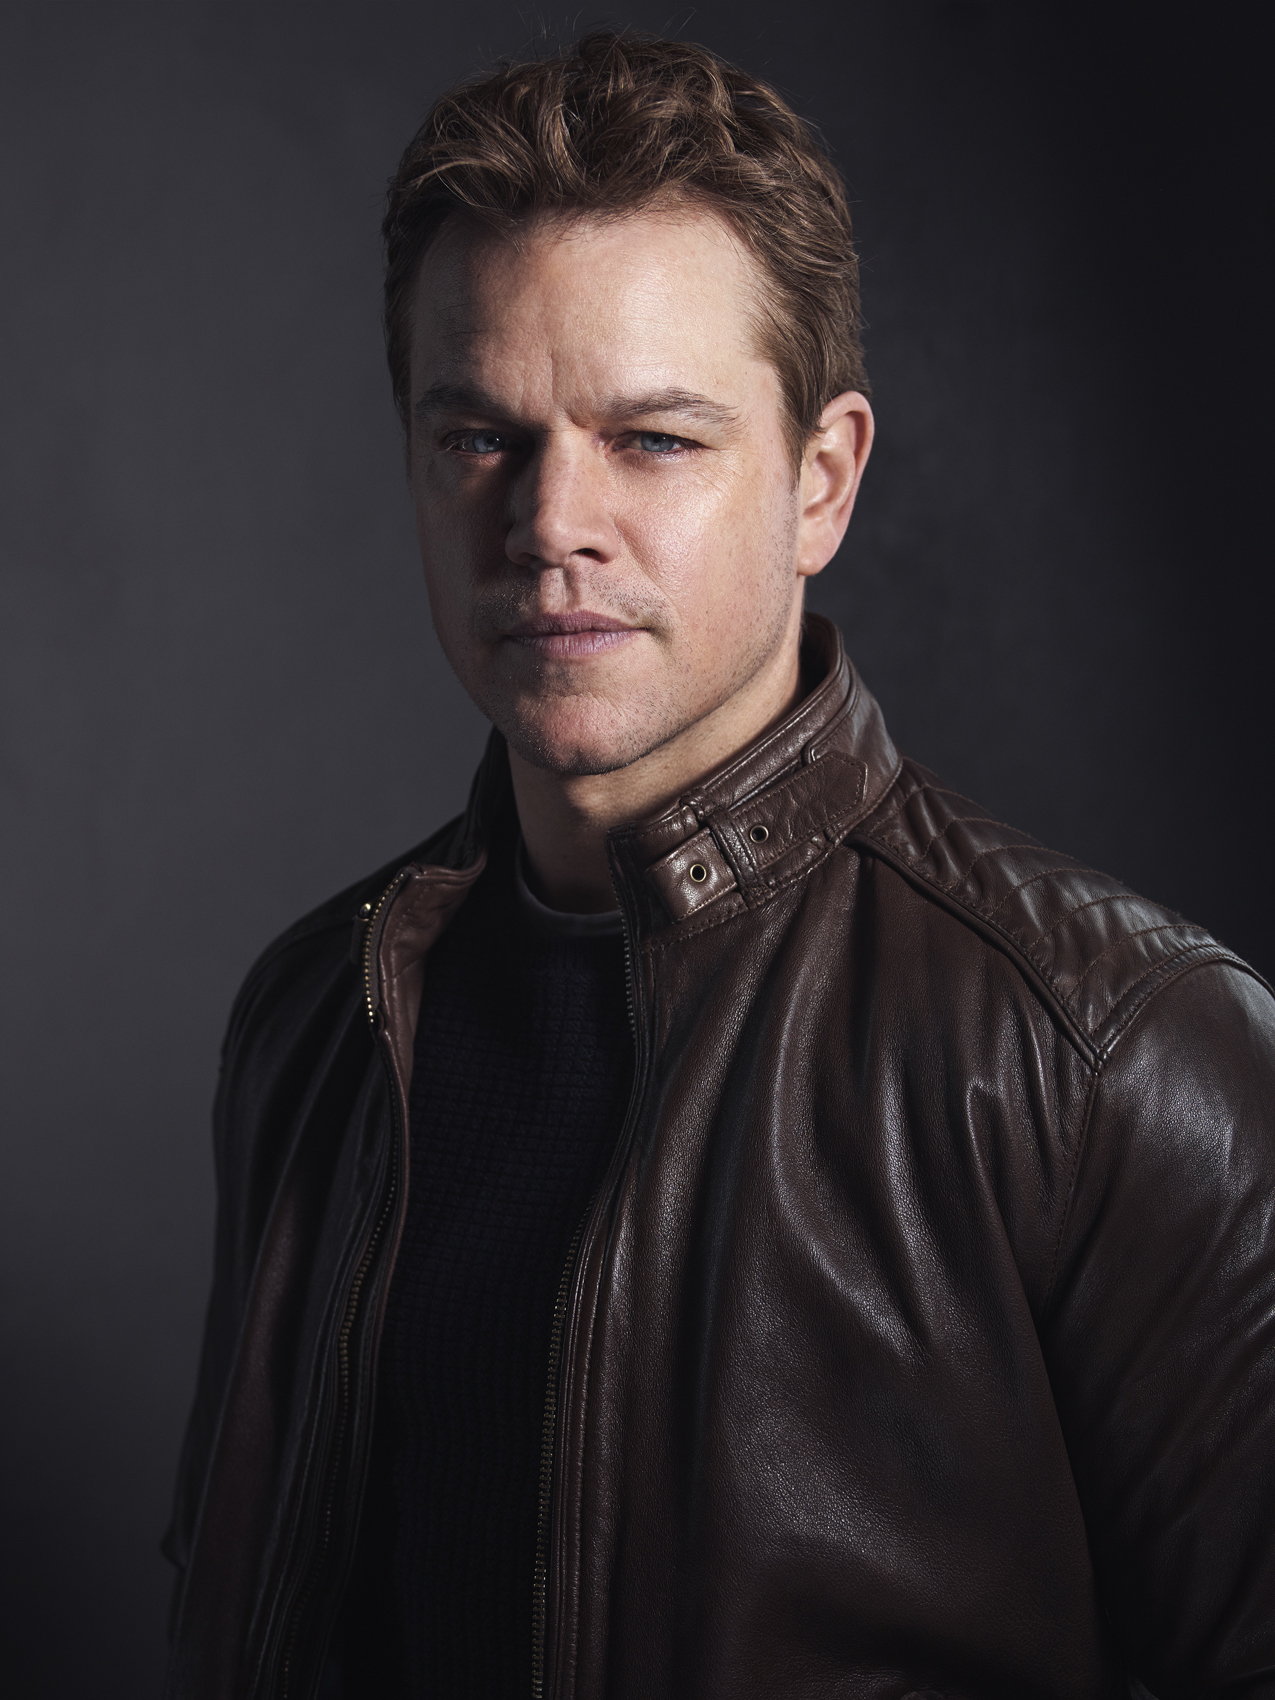 20150217_JR_MattDamon_0083B_flat_web_v3